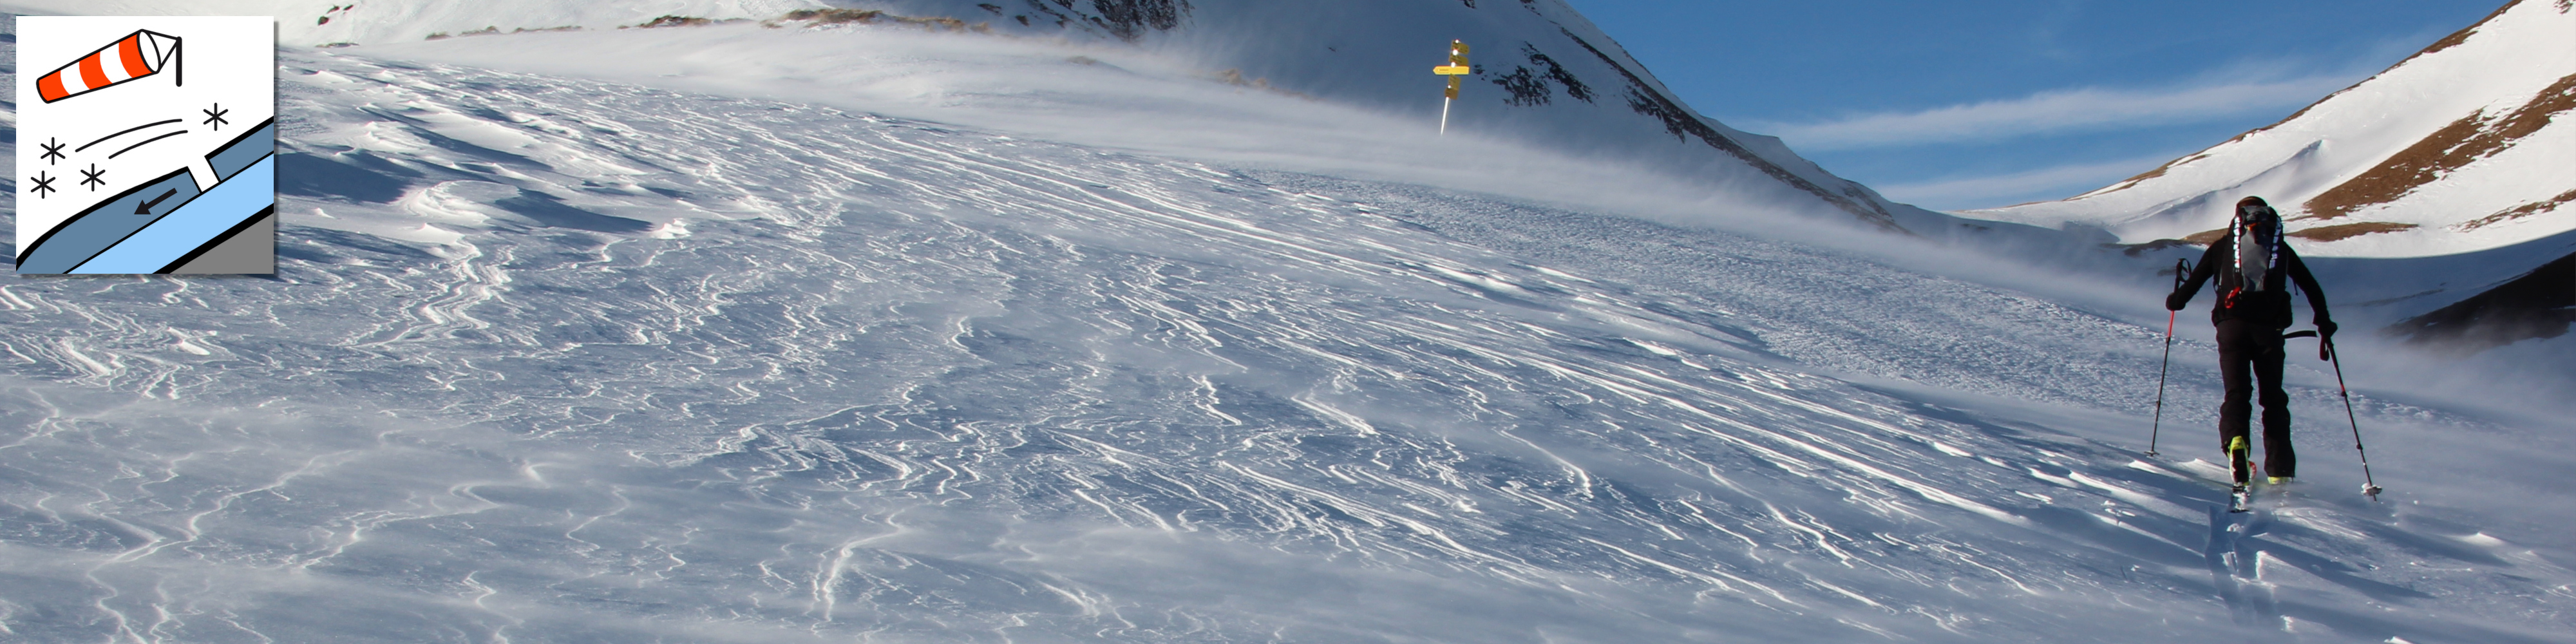 Avalanche problems wind-drifted snow | EAWS European Avalanche Warning Services